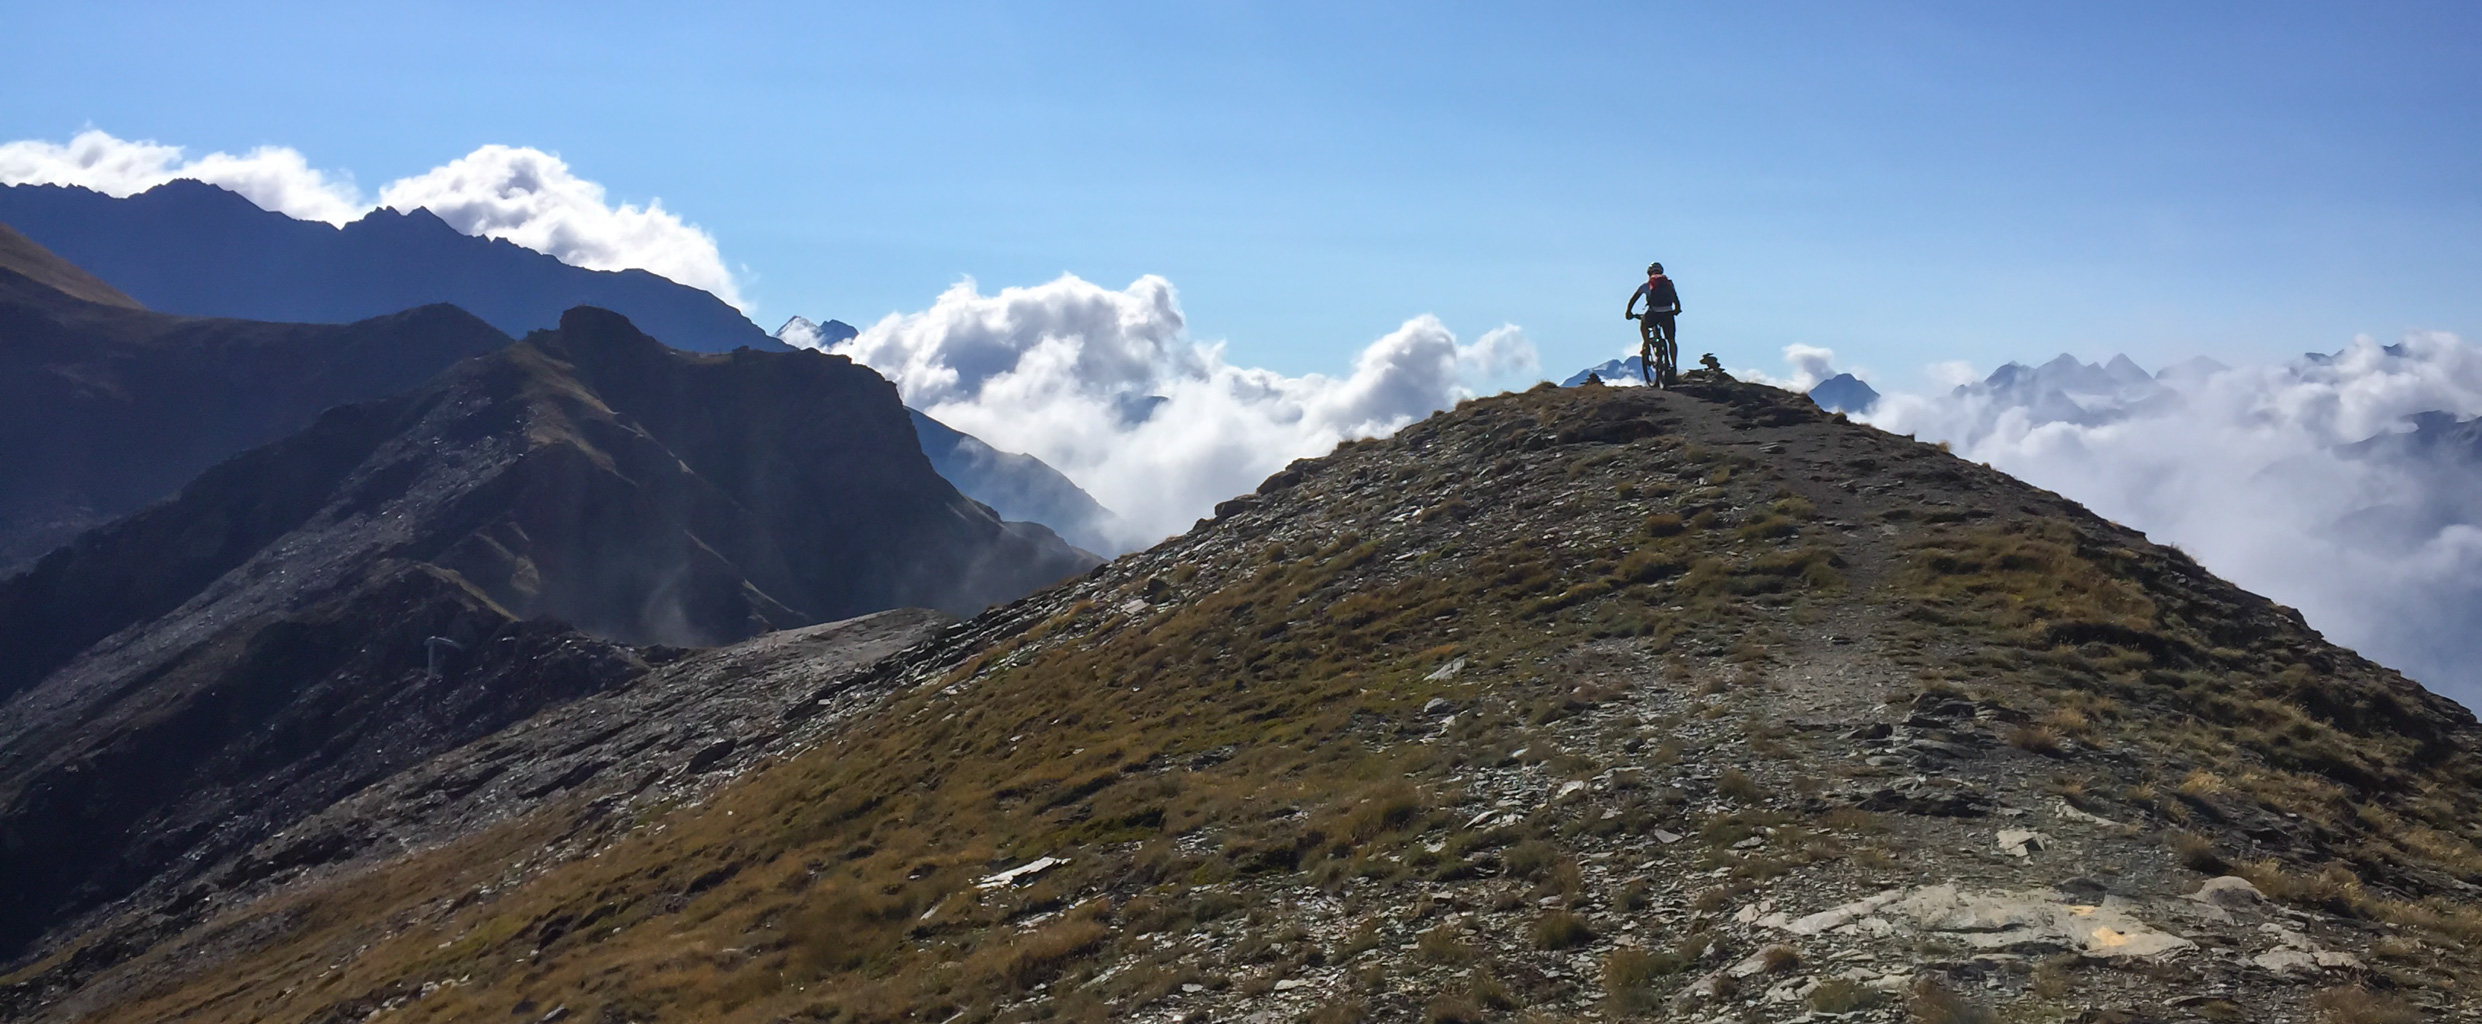 High alpine biking Aosta